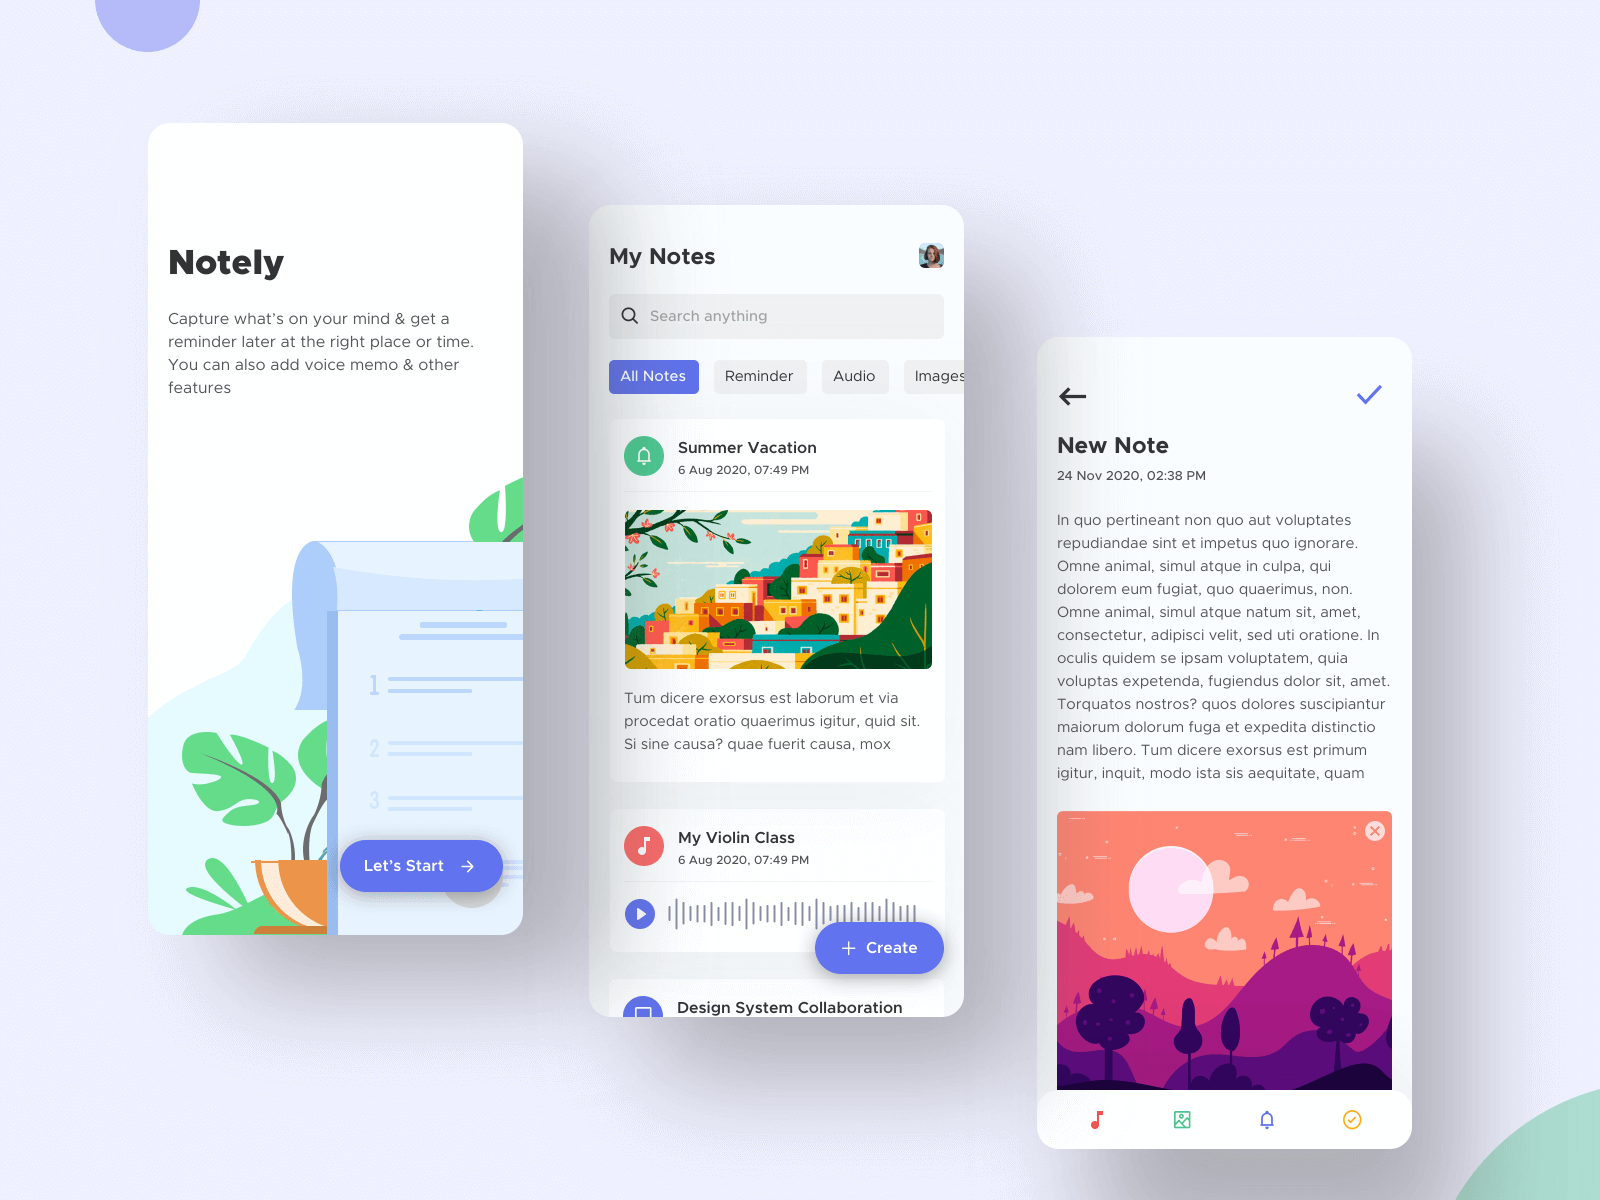 Notely - Note Taking App cover image